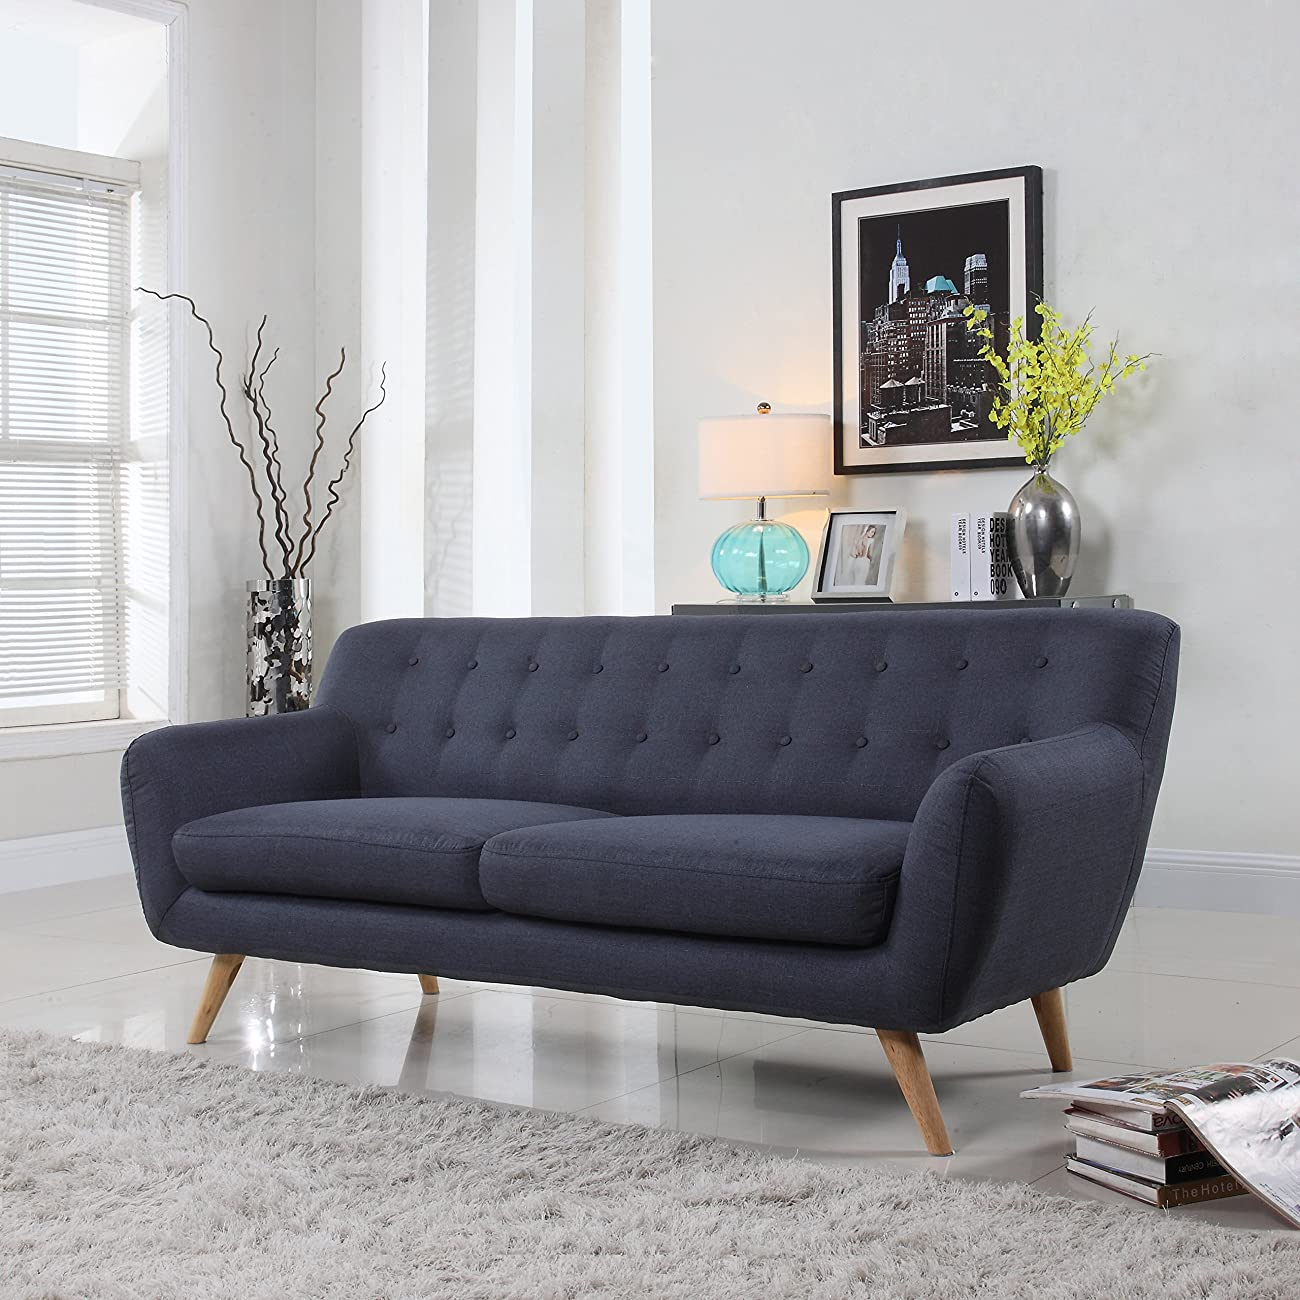 Mid-Century modern tufted linen fabric loveseat in various colors - polo blue, blue, light grey, yellow and red (Light Grey with Multi Color Buttons) 0